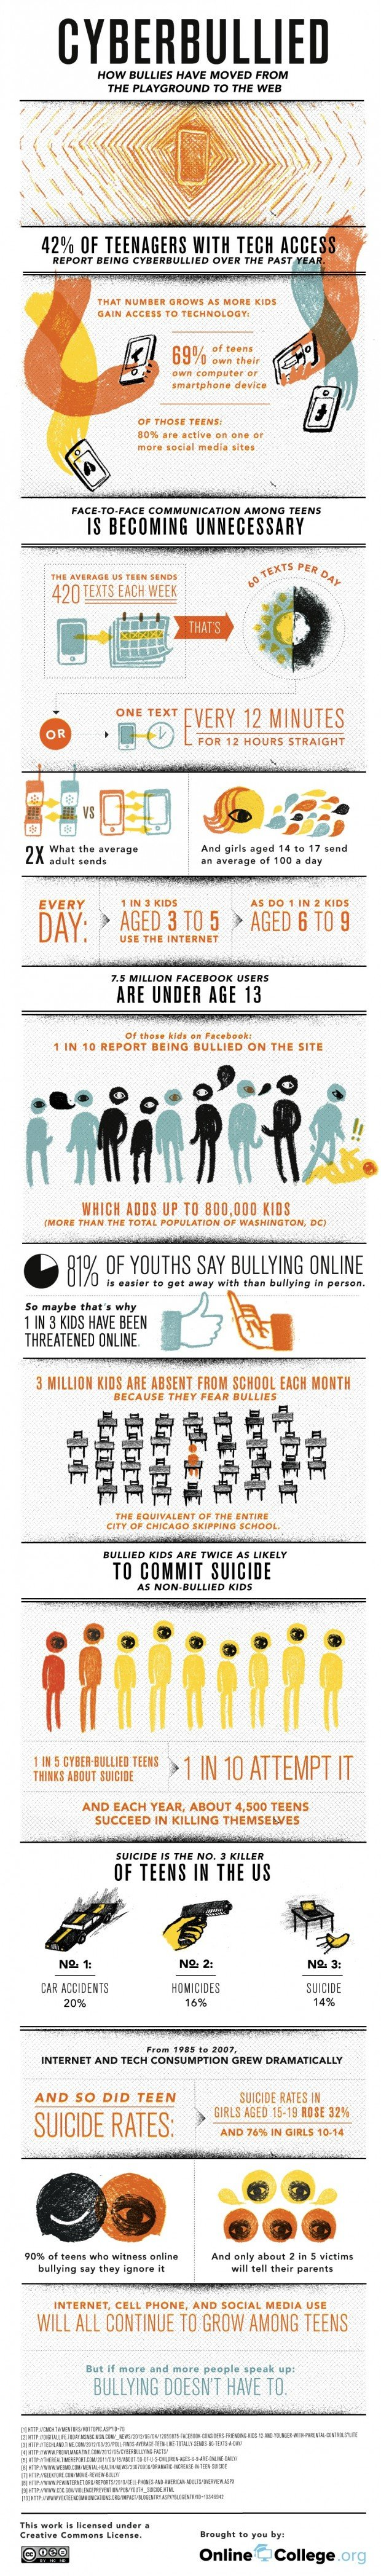 The Facts of Cyberbullying [Infographic]